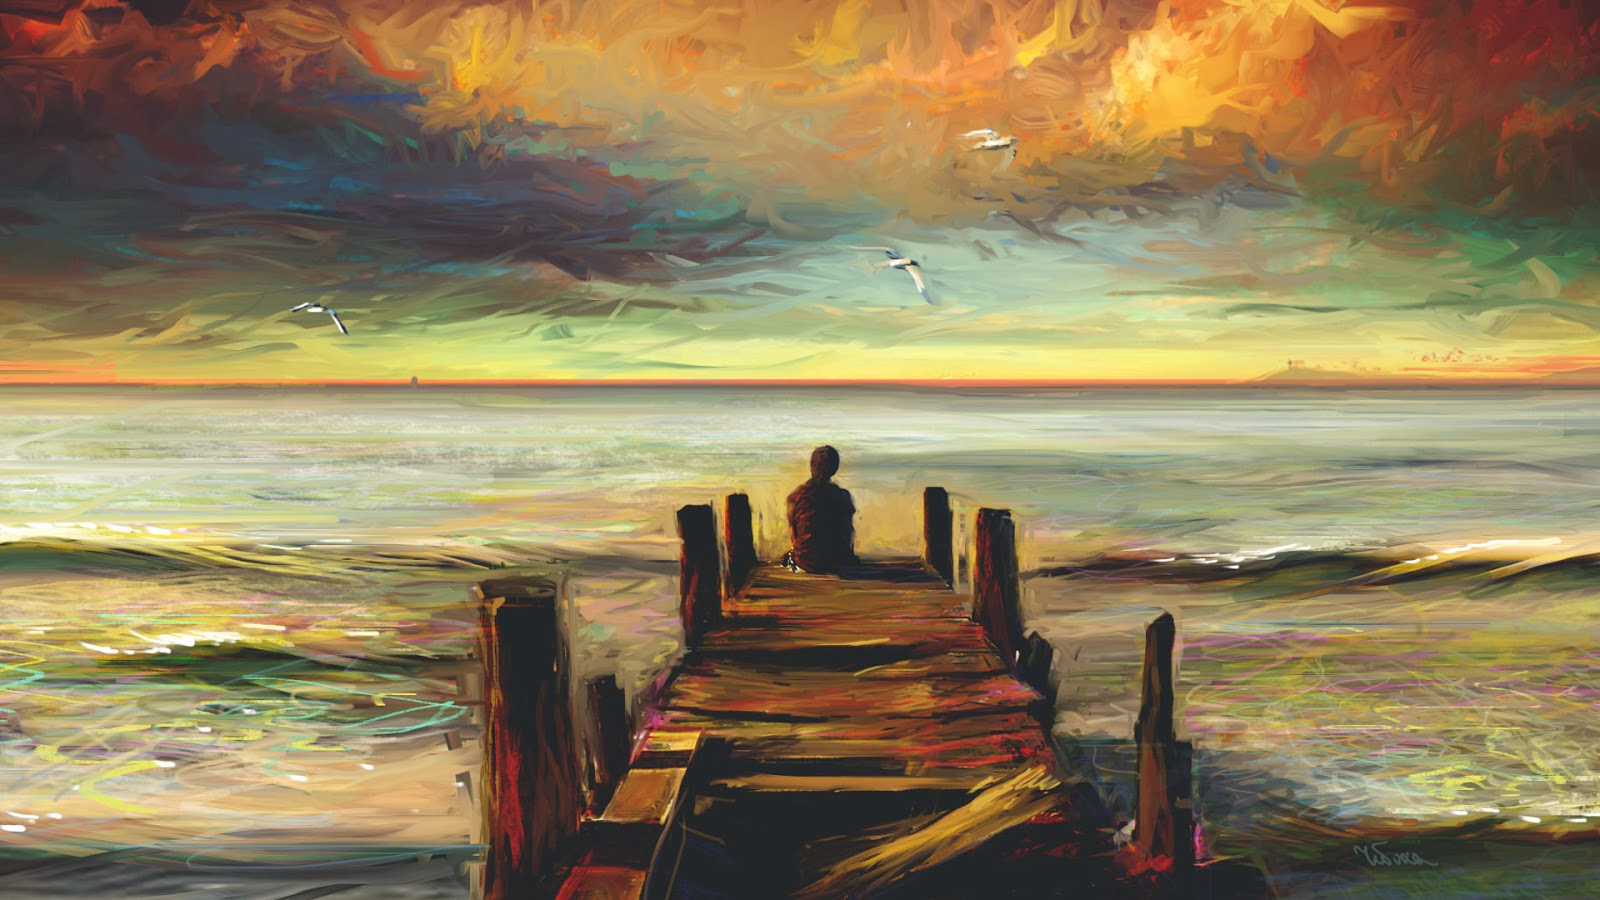 Lonely-boy-at-sea-watching-sunset-oil-painting-HD-photo.jpg